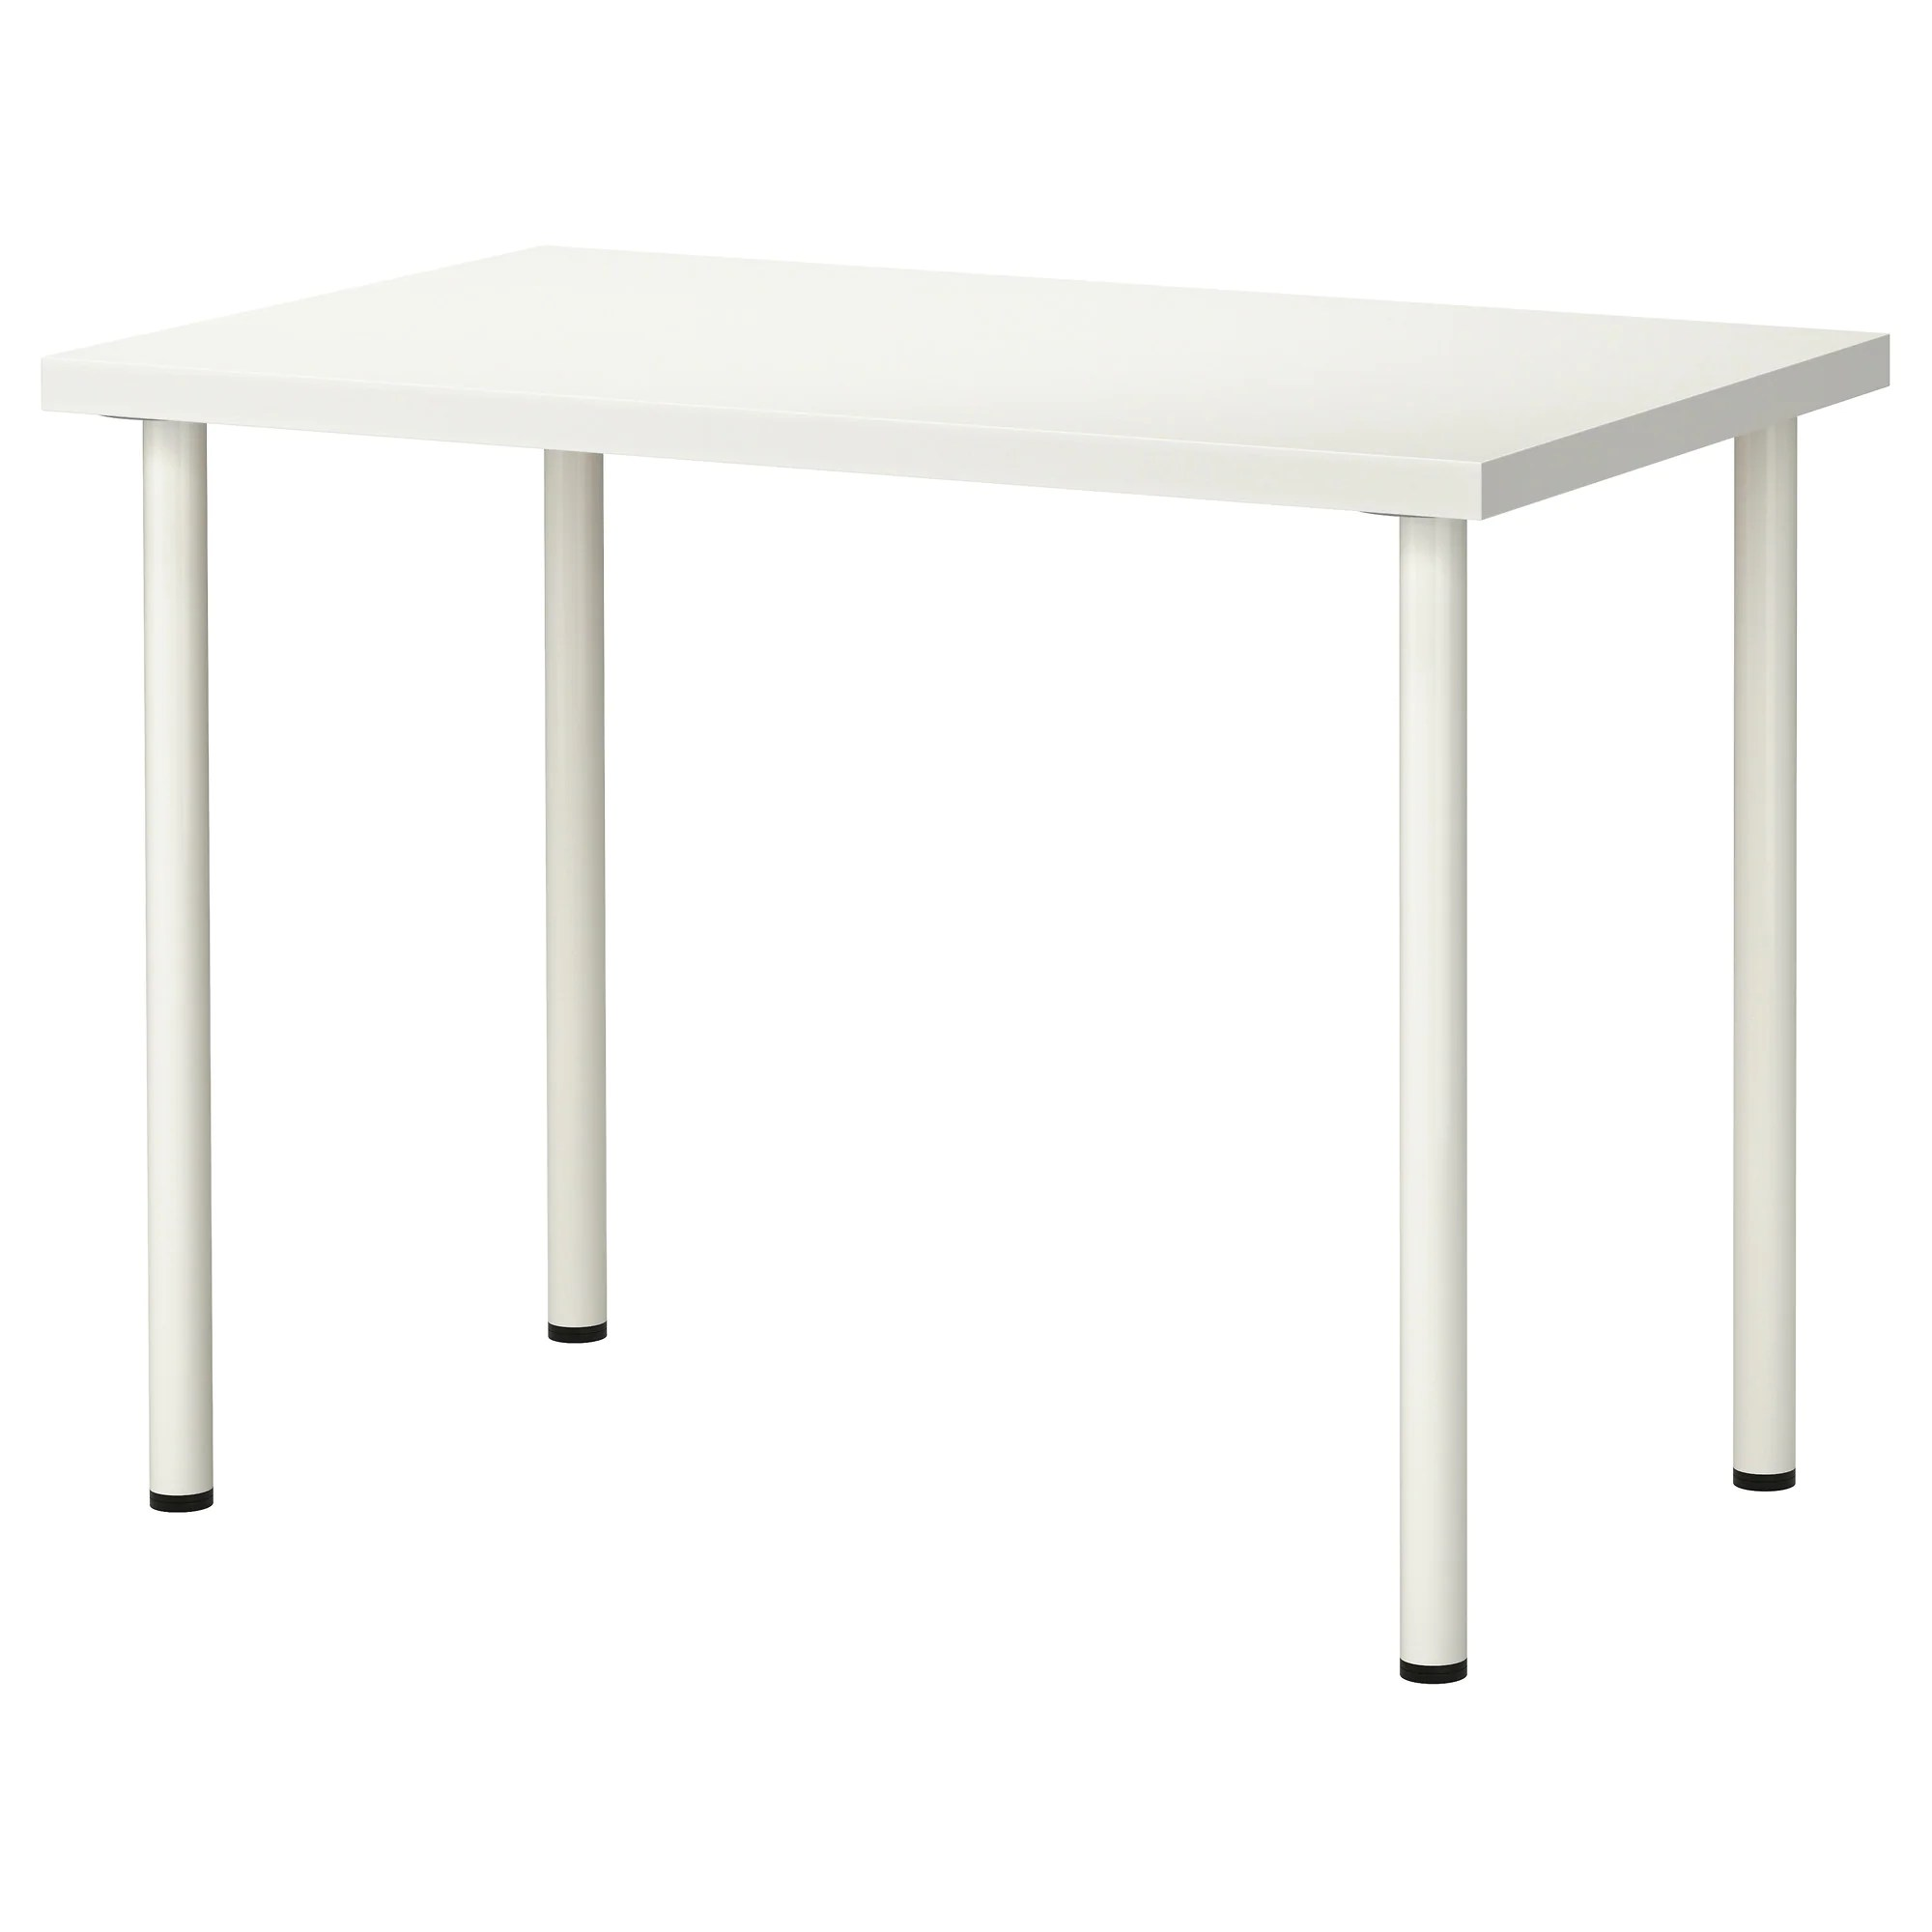 Ikea Table Linnmon Adils Table White